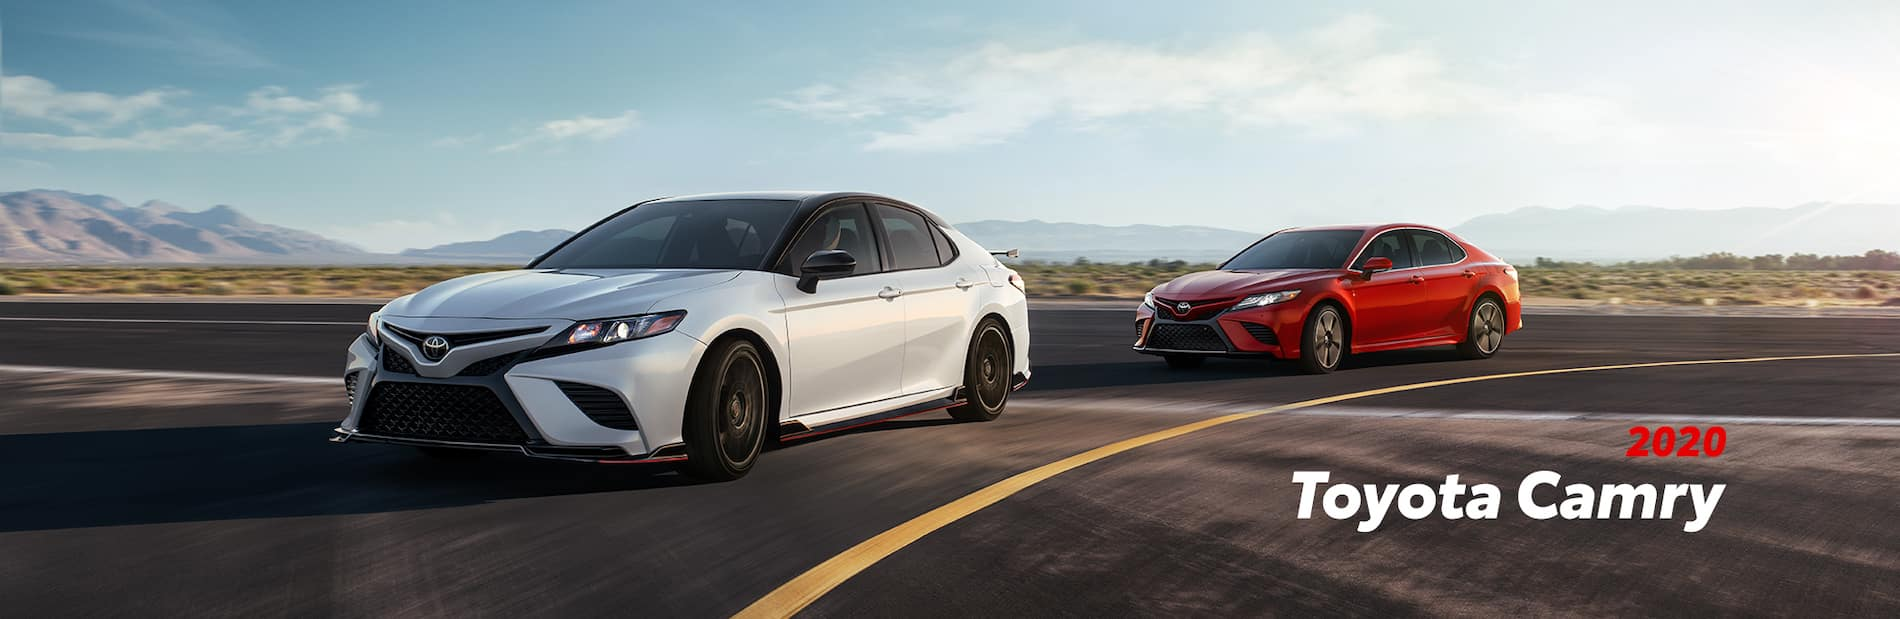 the 2020 toyota camry model features